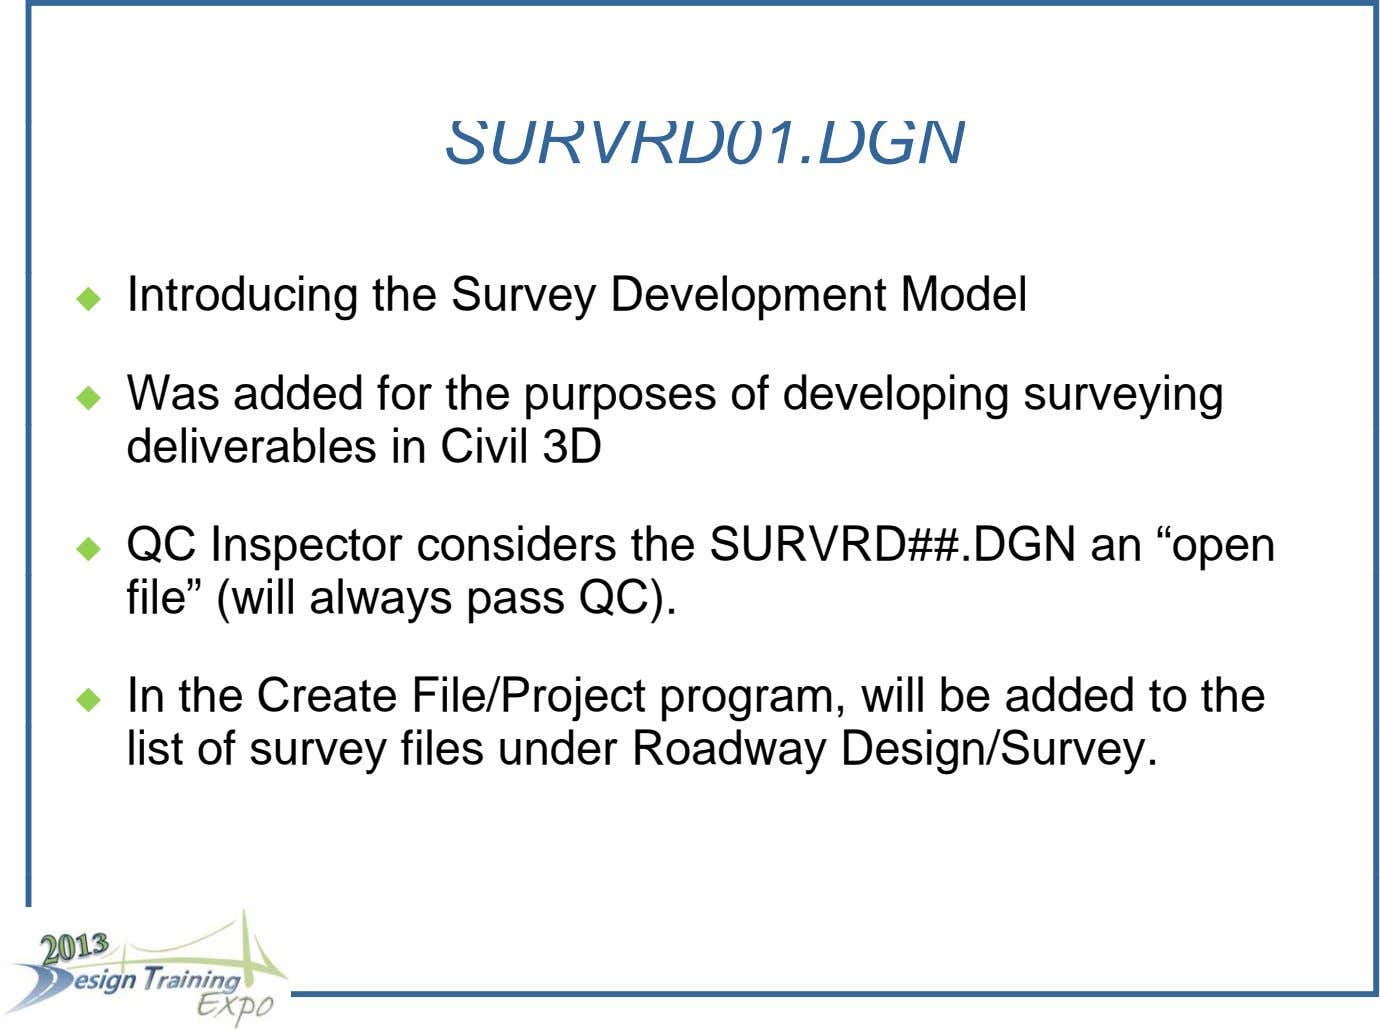 SURVRD01.DGN Introducing the Survey Development Model   Was added for the purposes of developing surveying